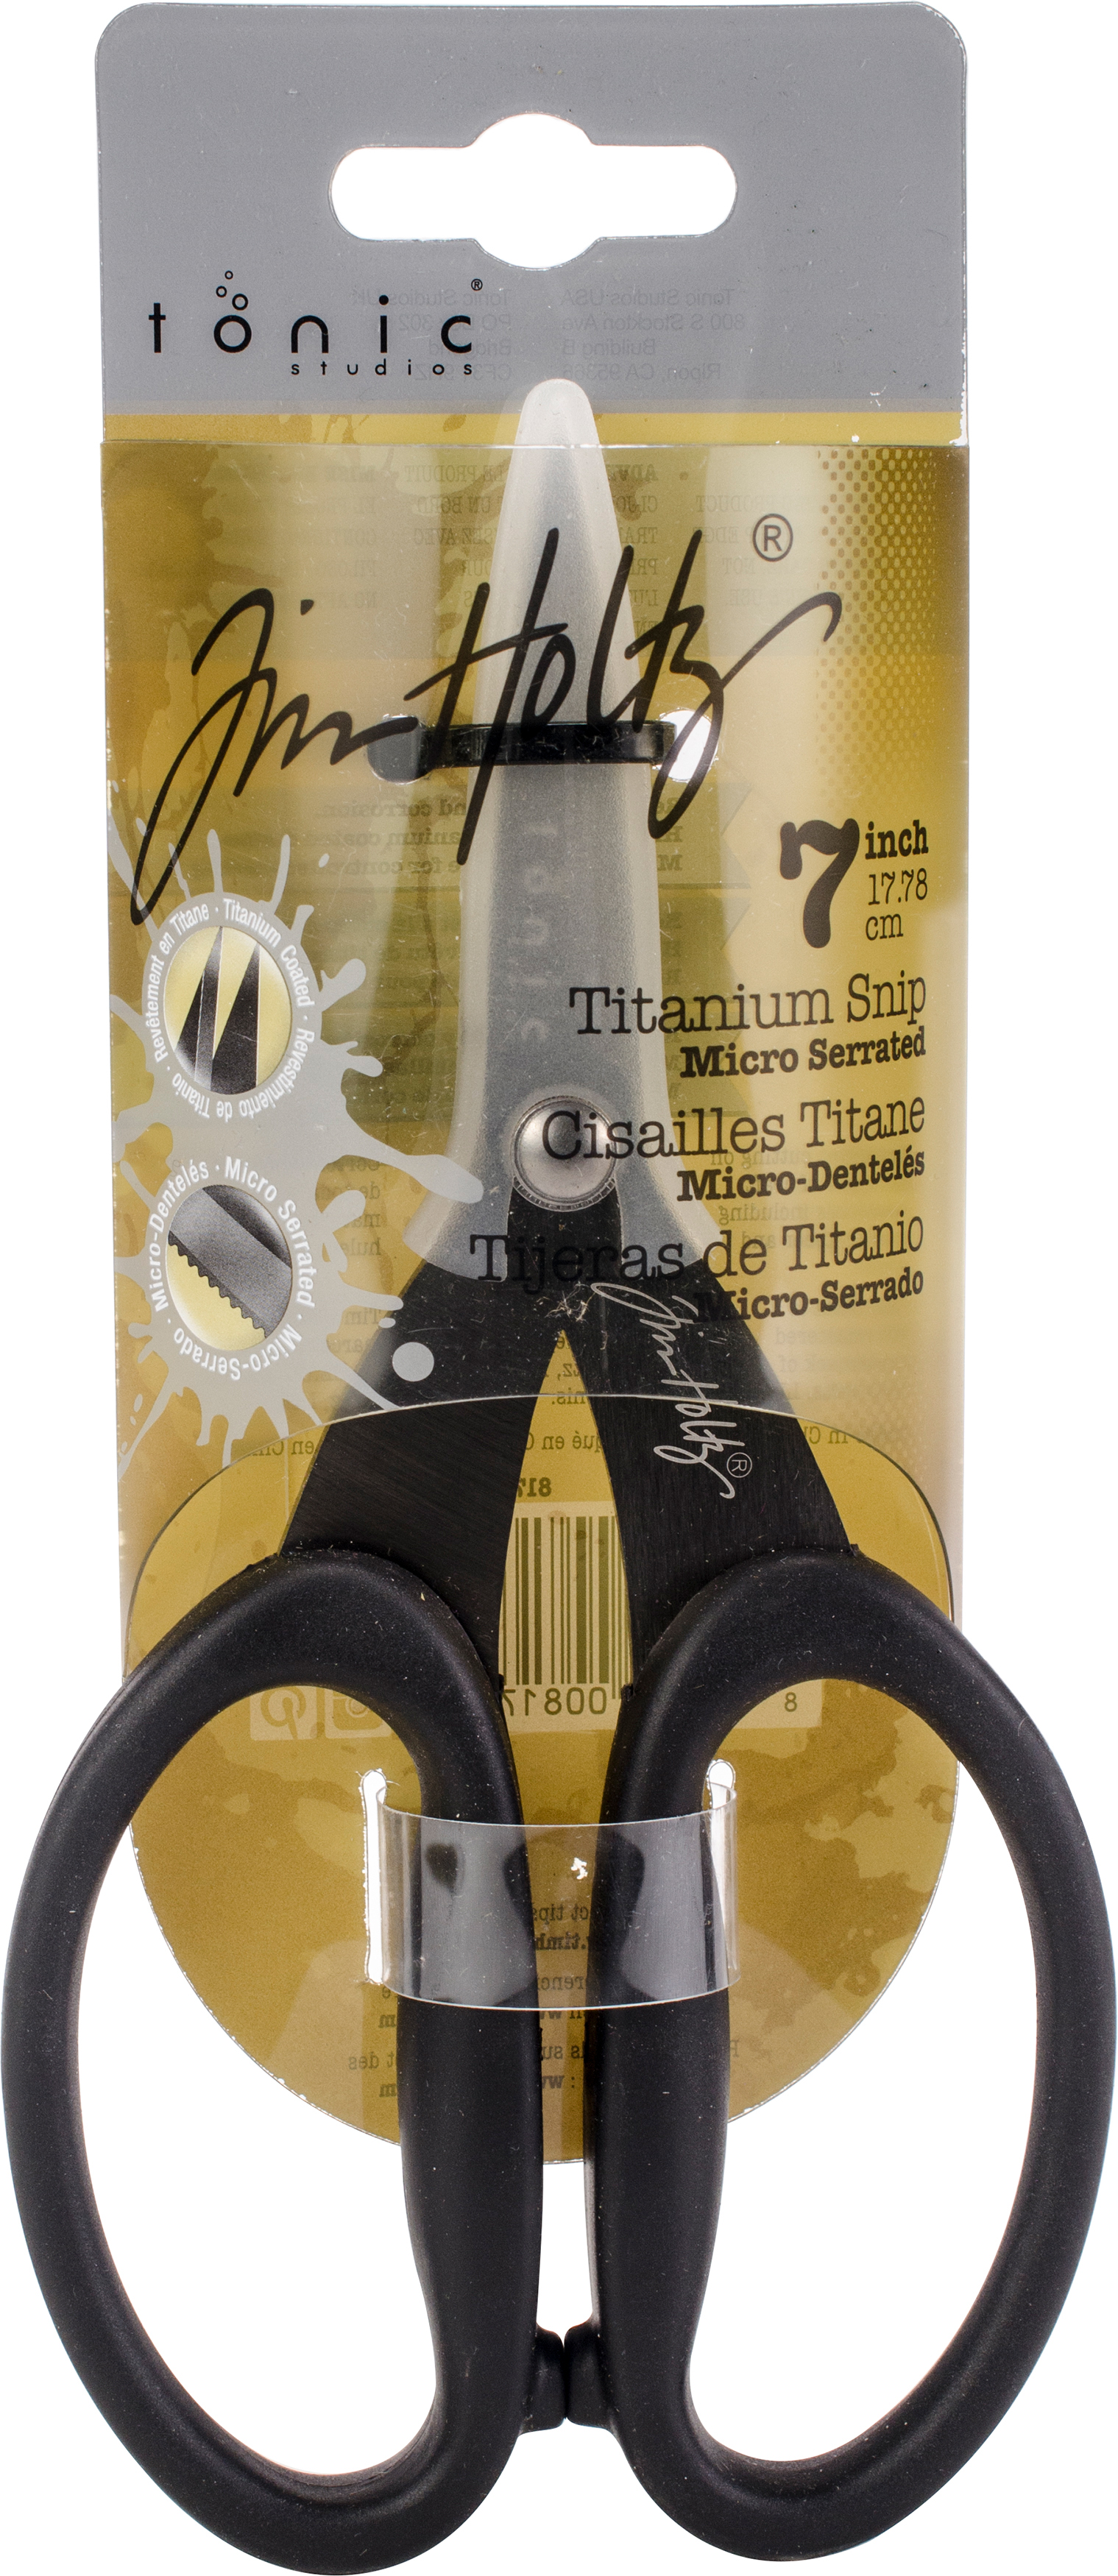 Tim Holtz Non-Stick Titanium Micro Serrated Scissors 7-